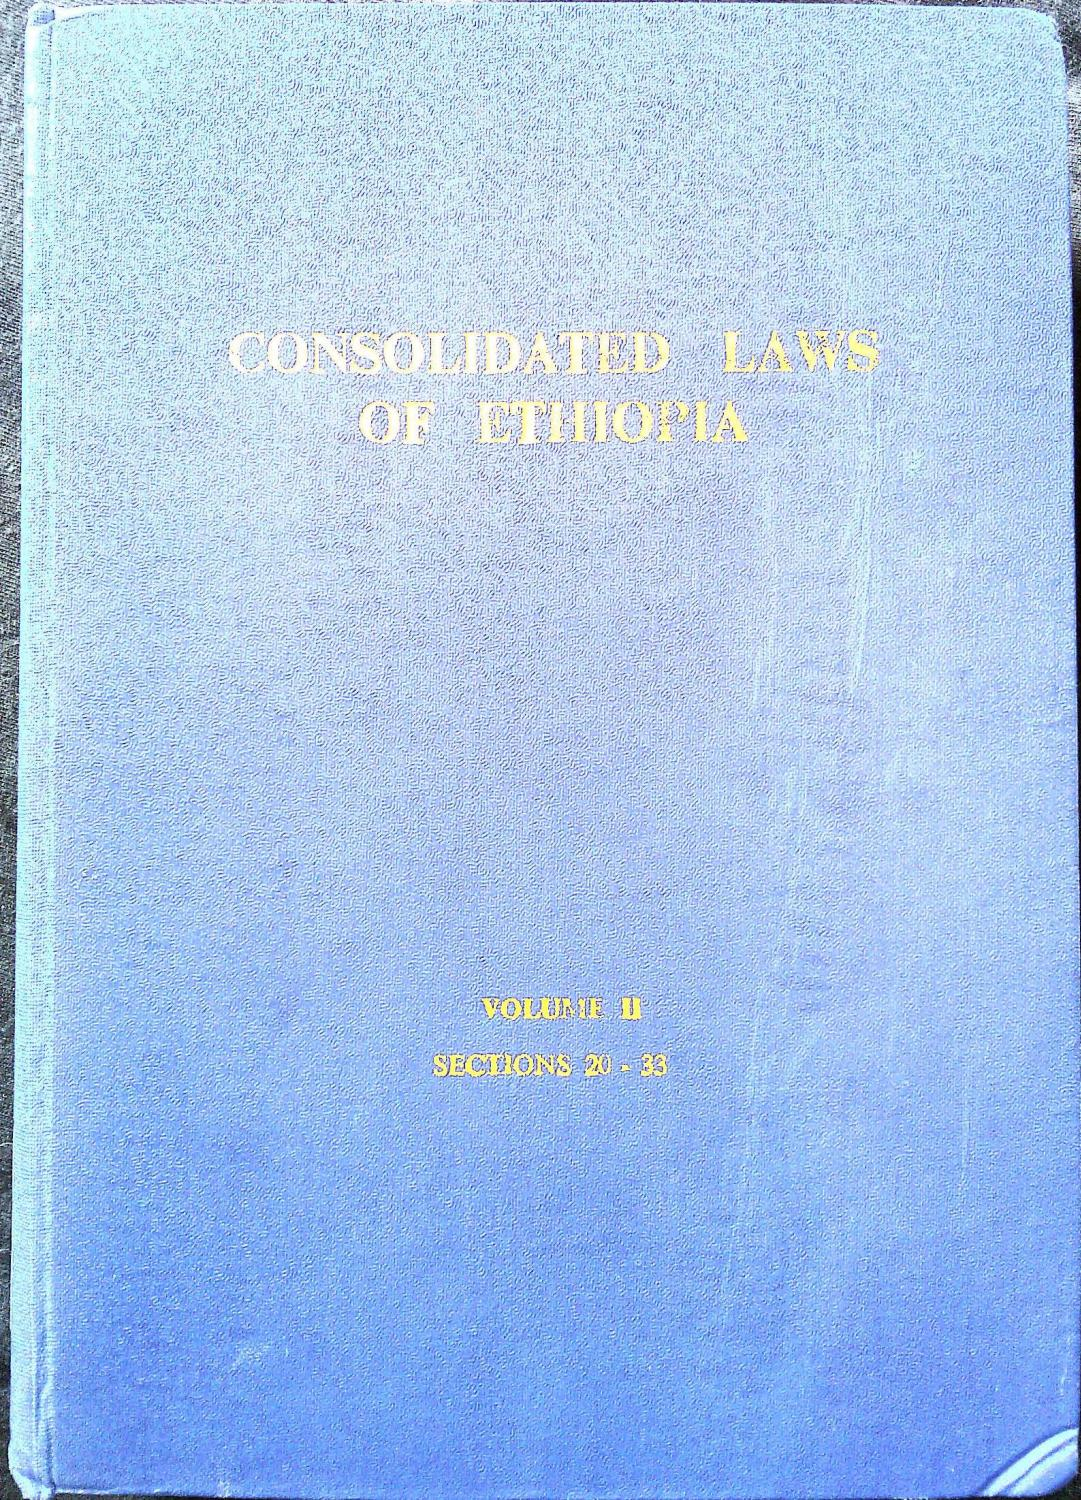 Consolidated Laws of Ethiopia Vol  II (1972) [Part 1] by